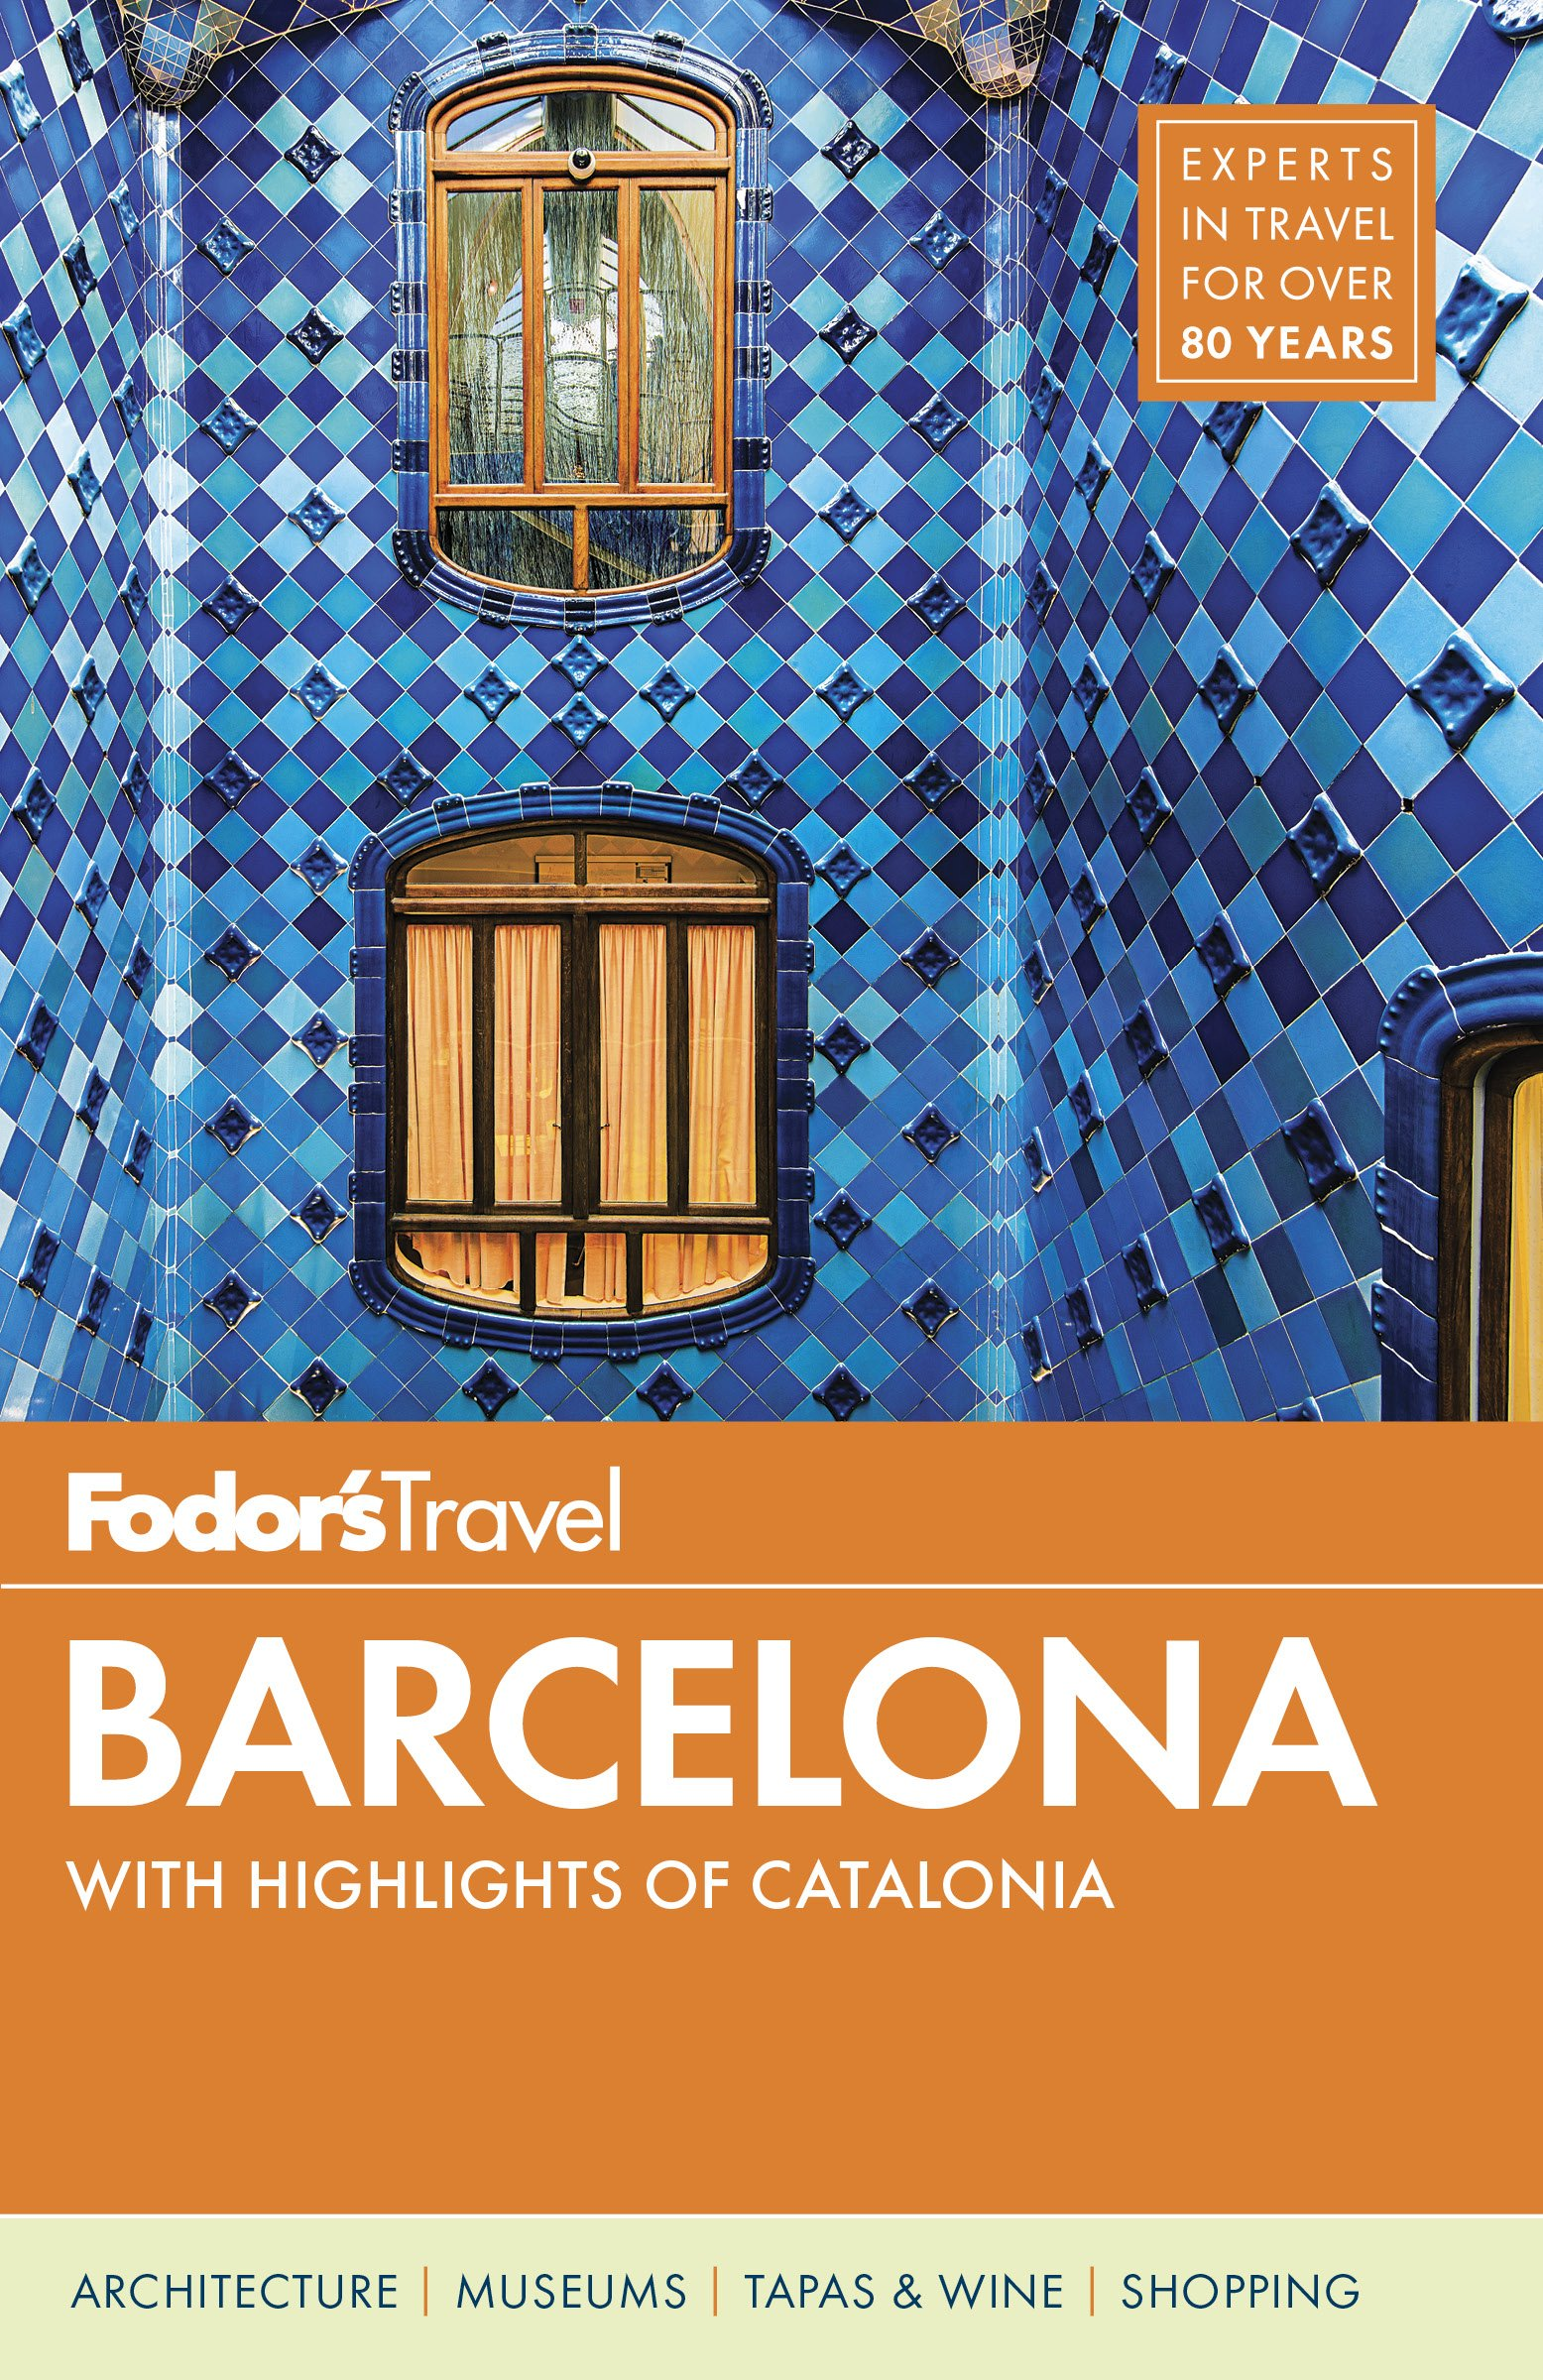 Read Online Fodor's Barcelona: with Highlights of Catalonia (Full-color Travel Guide) PDF ePub book